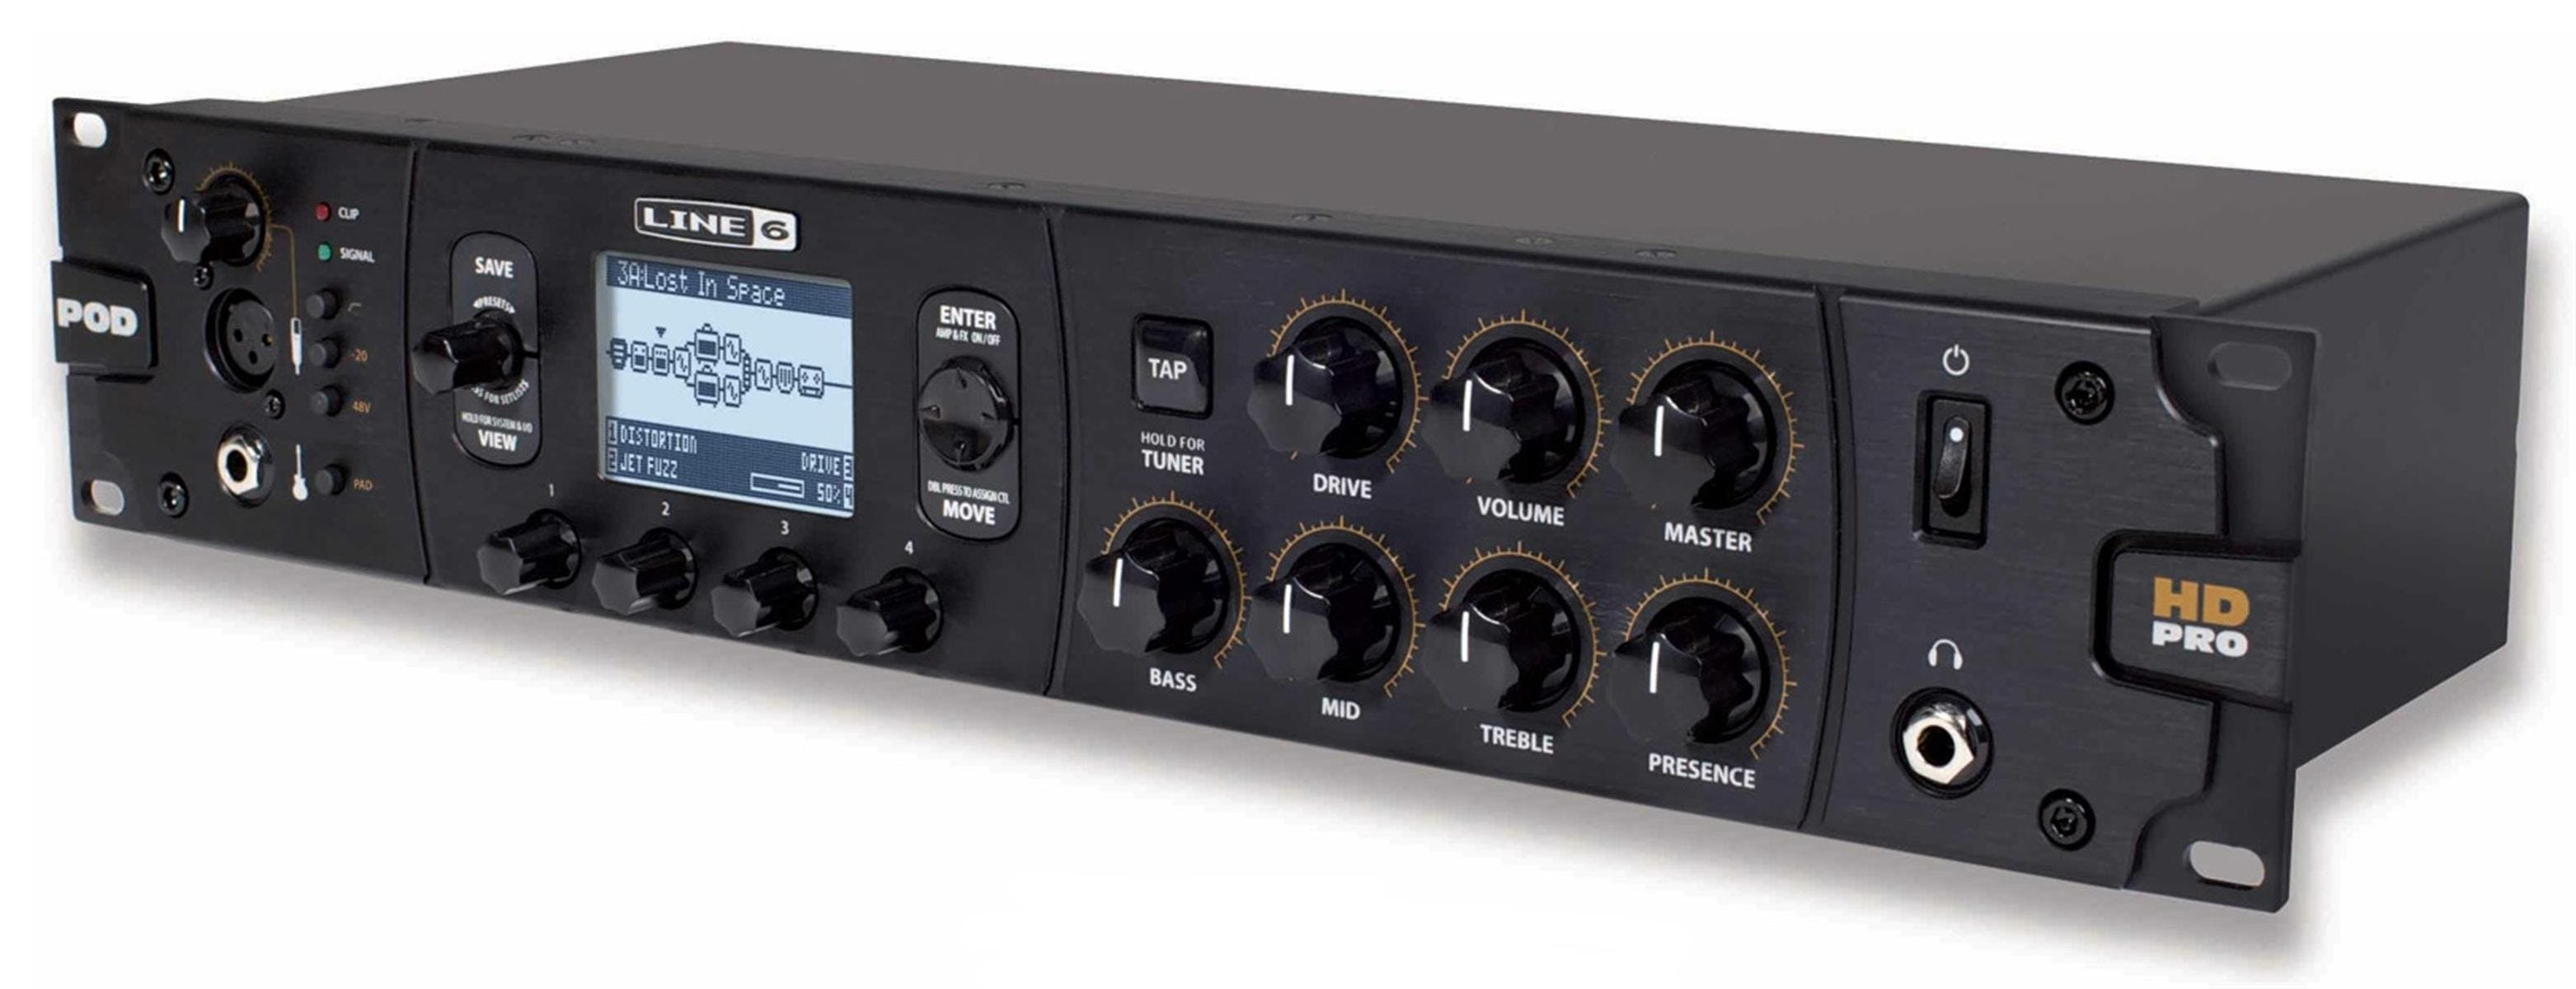 POD HD PRO X Guitar Multi-Effects Processor and Studio Interface -  Andertons Music Co.